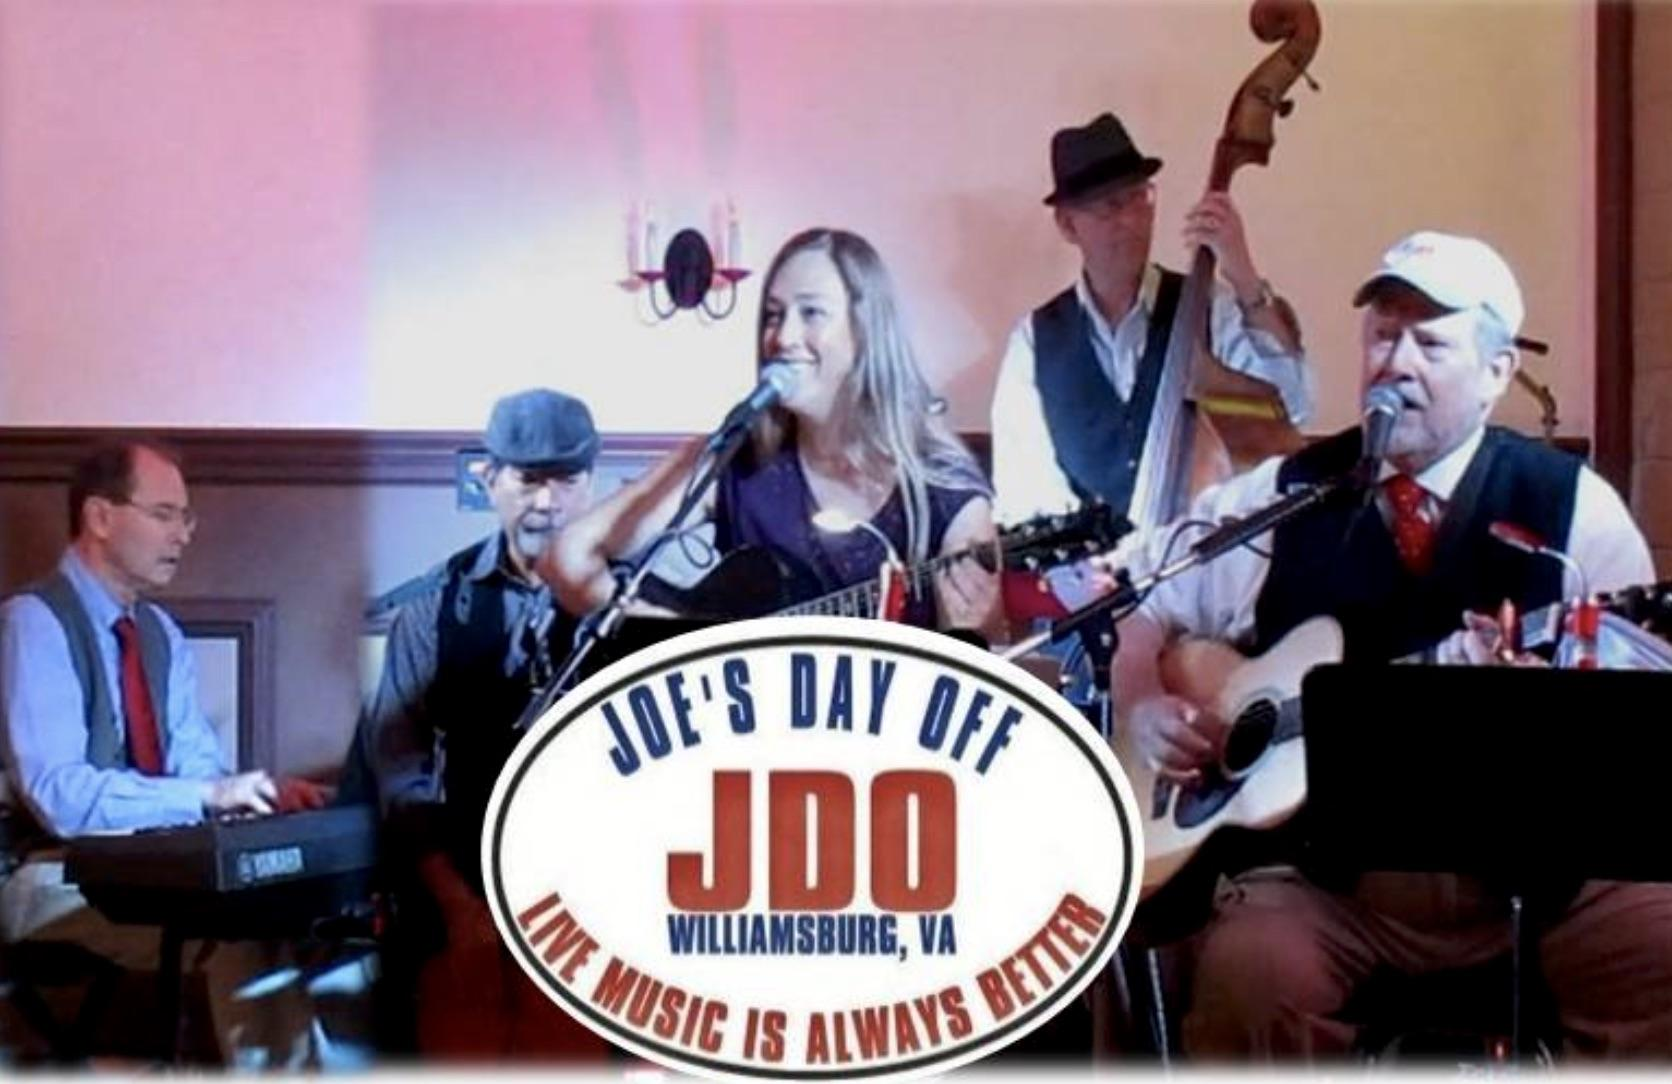 Joe's Day Off @ 501 Bar and Grill at Stonehouse